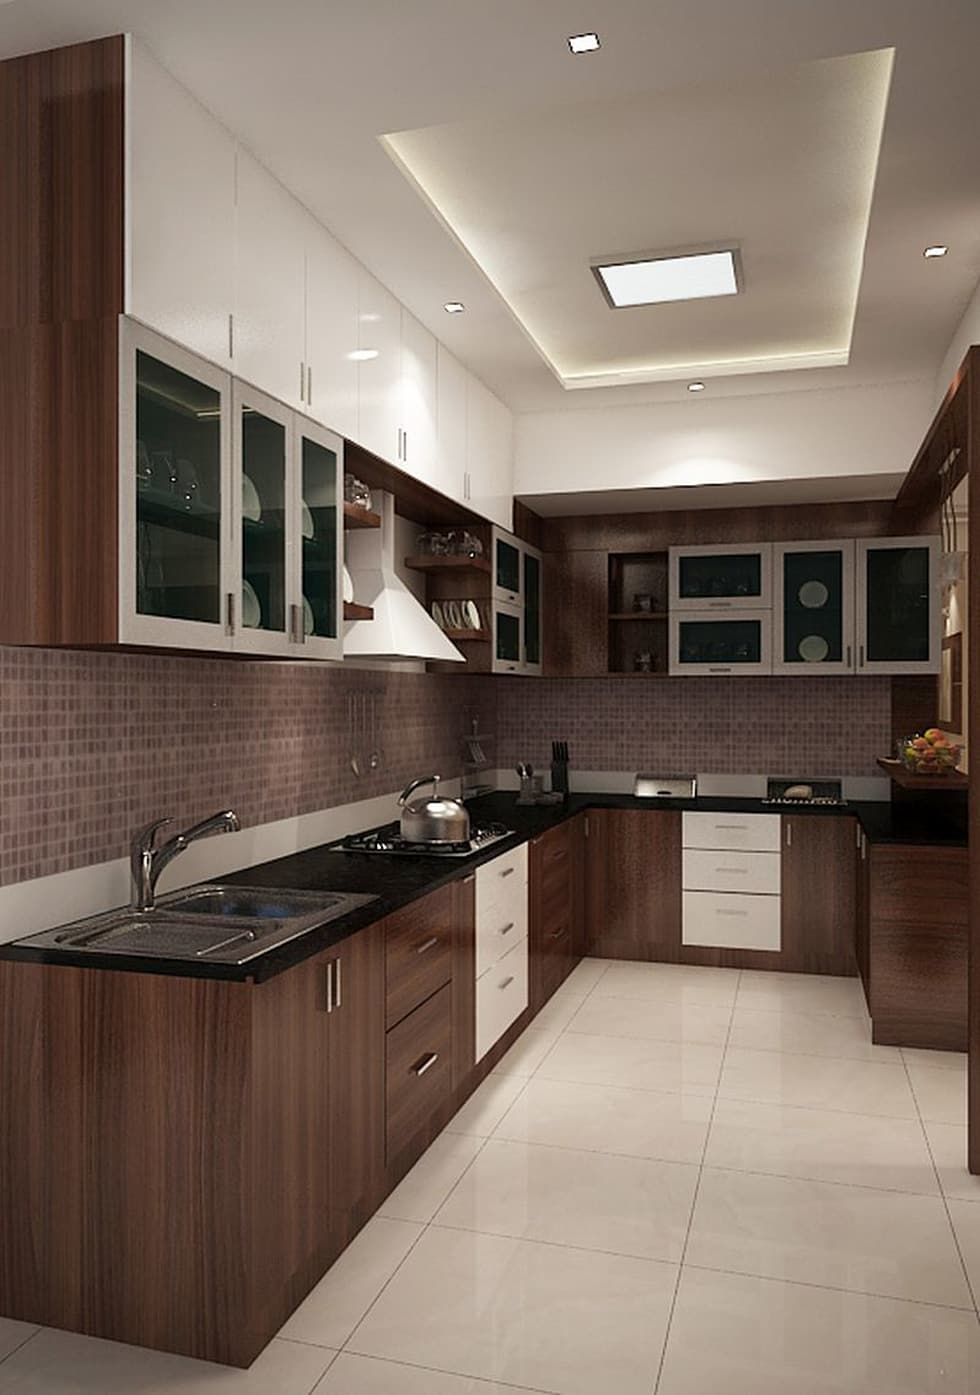 4 bedroom apartment at SJR Watermark by ACE INTERIORS ...